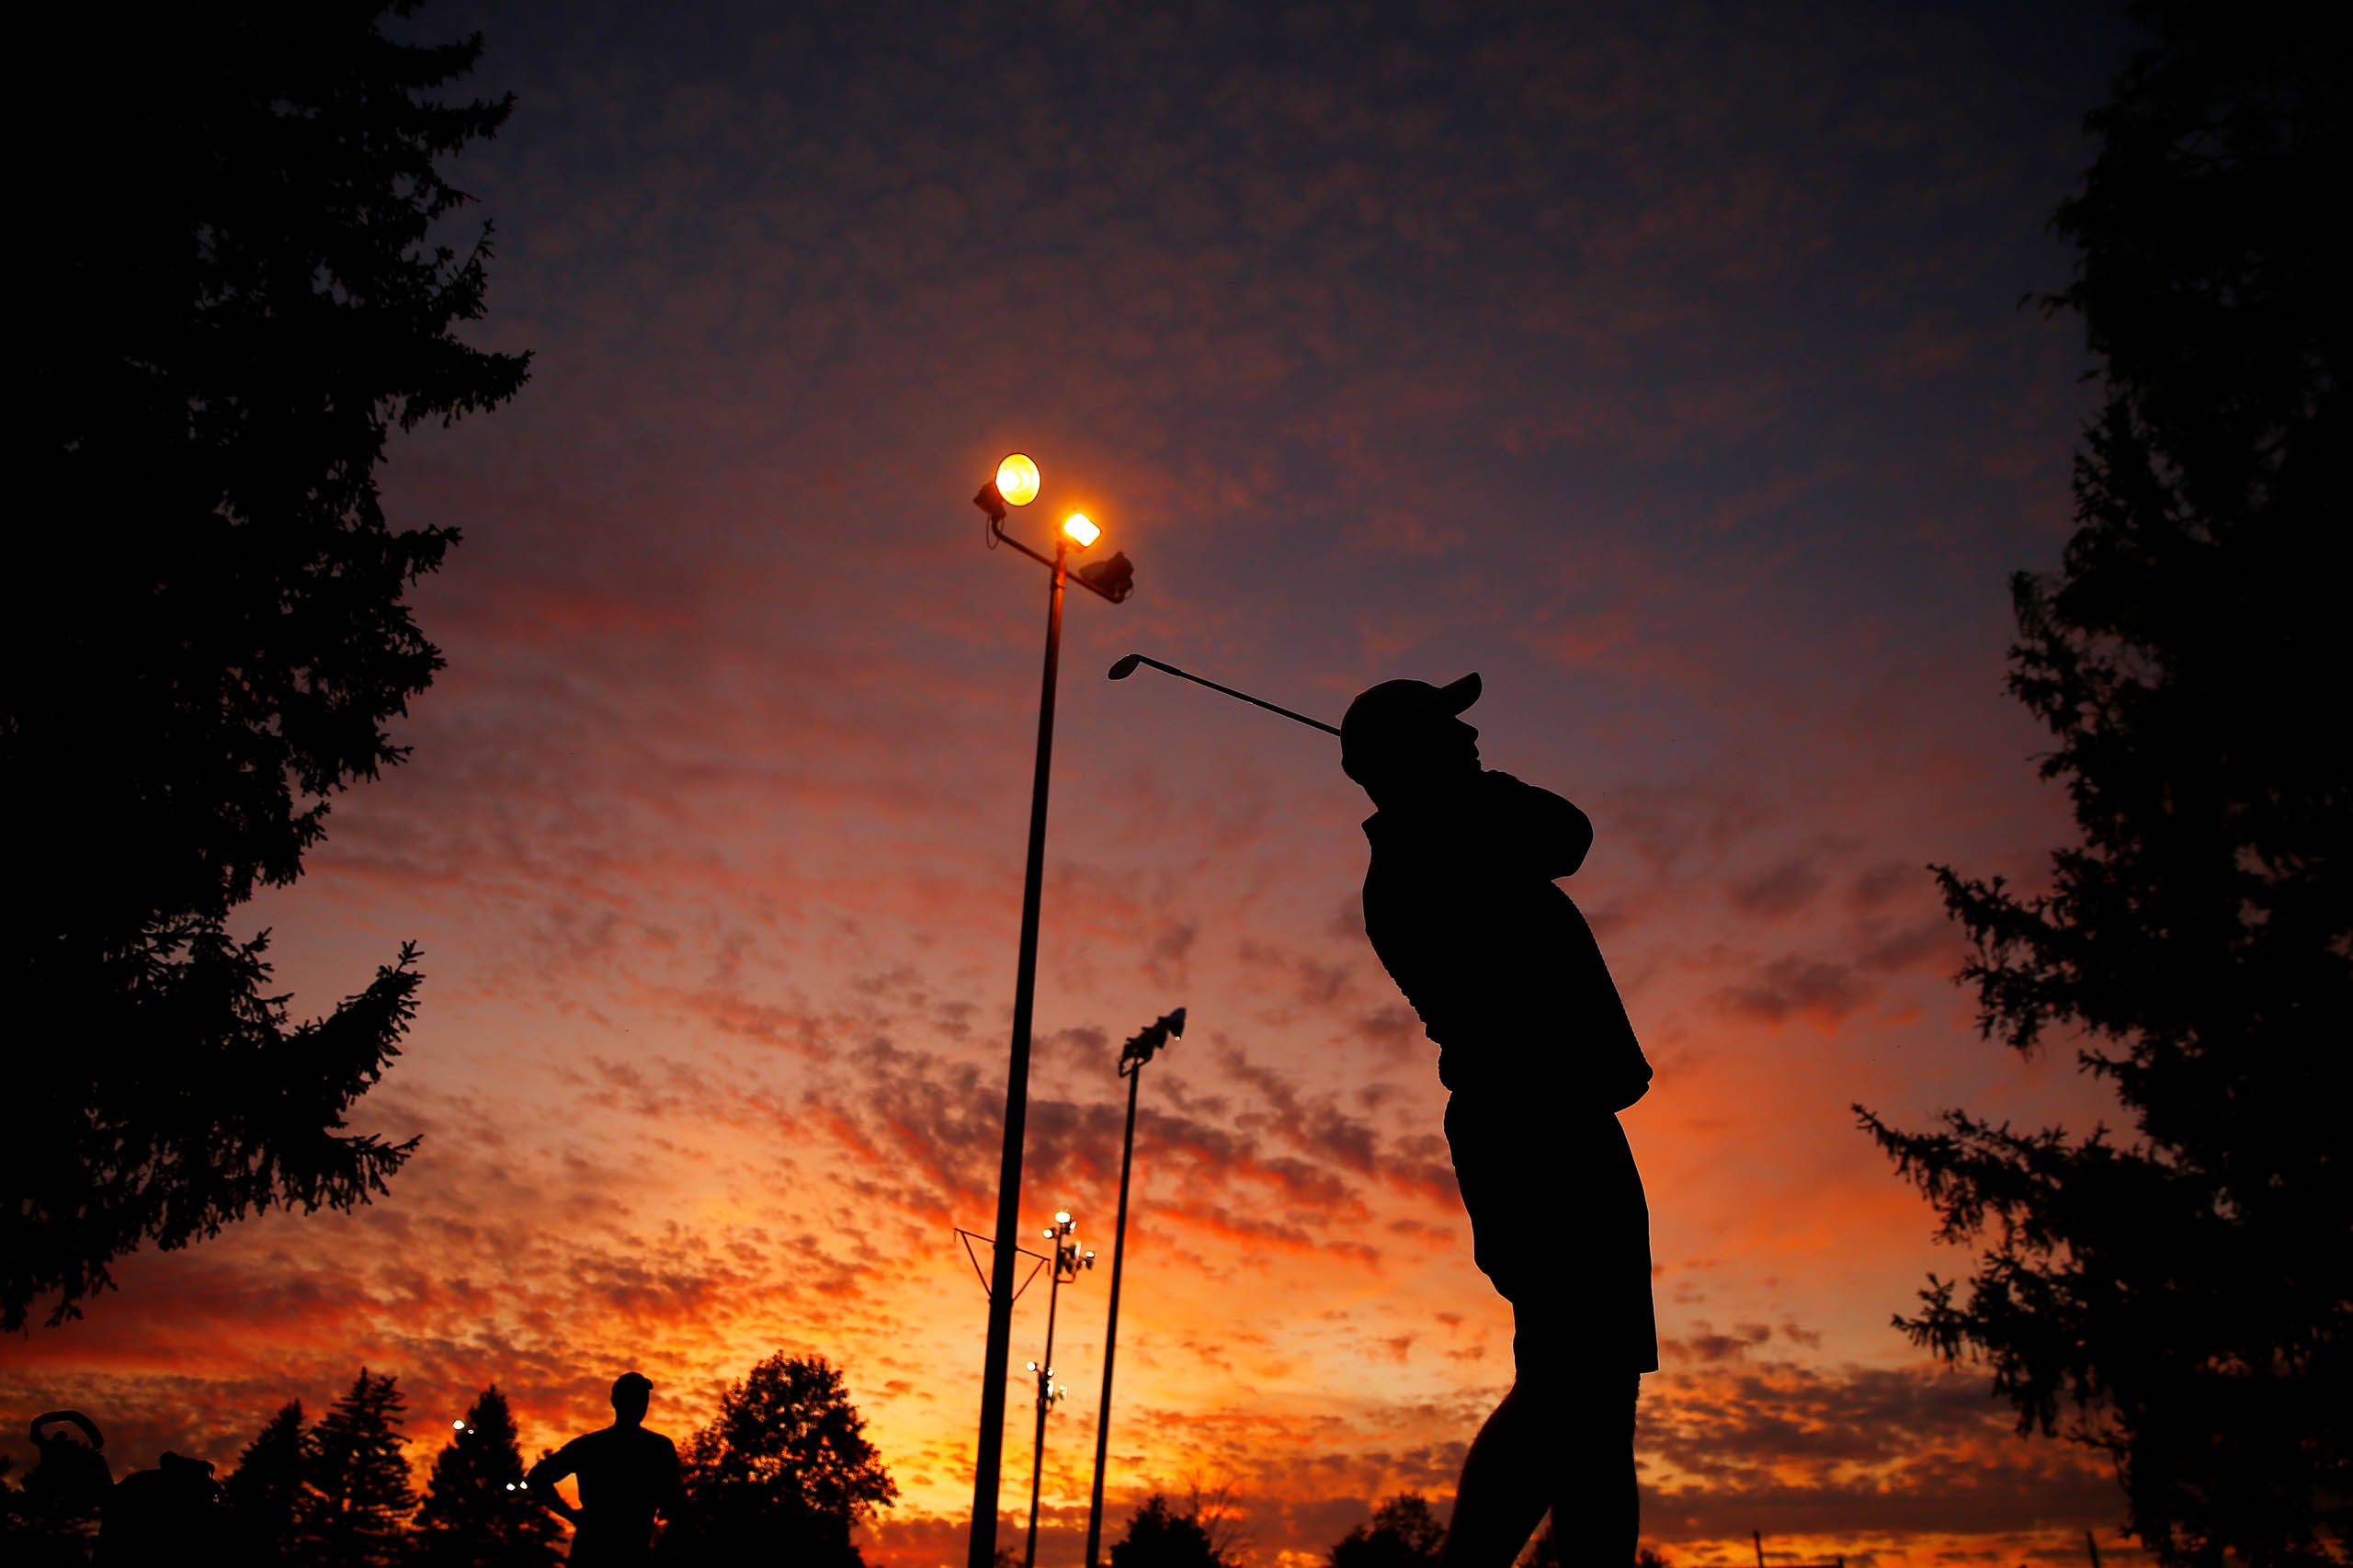 Ryan Donnelly is silhouetted against the sunset before teeing off for night golf at the Bob-O-Link golf course on Friday September 20, 2019 in Orchard Park, New York. (Photo by Jared Wickerham/Golfers Journal)